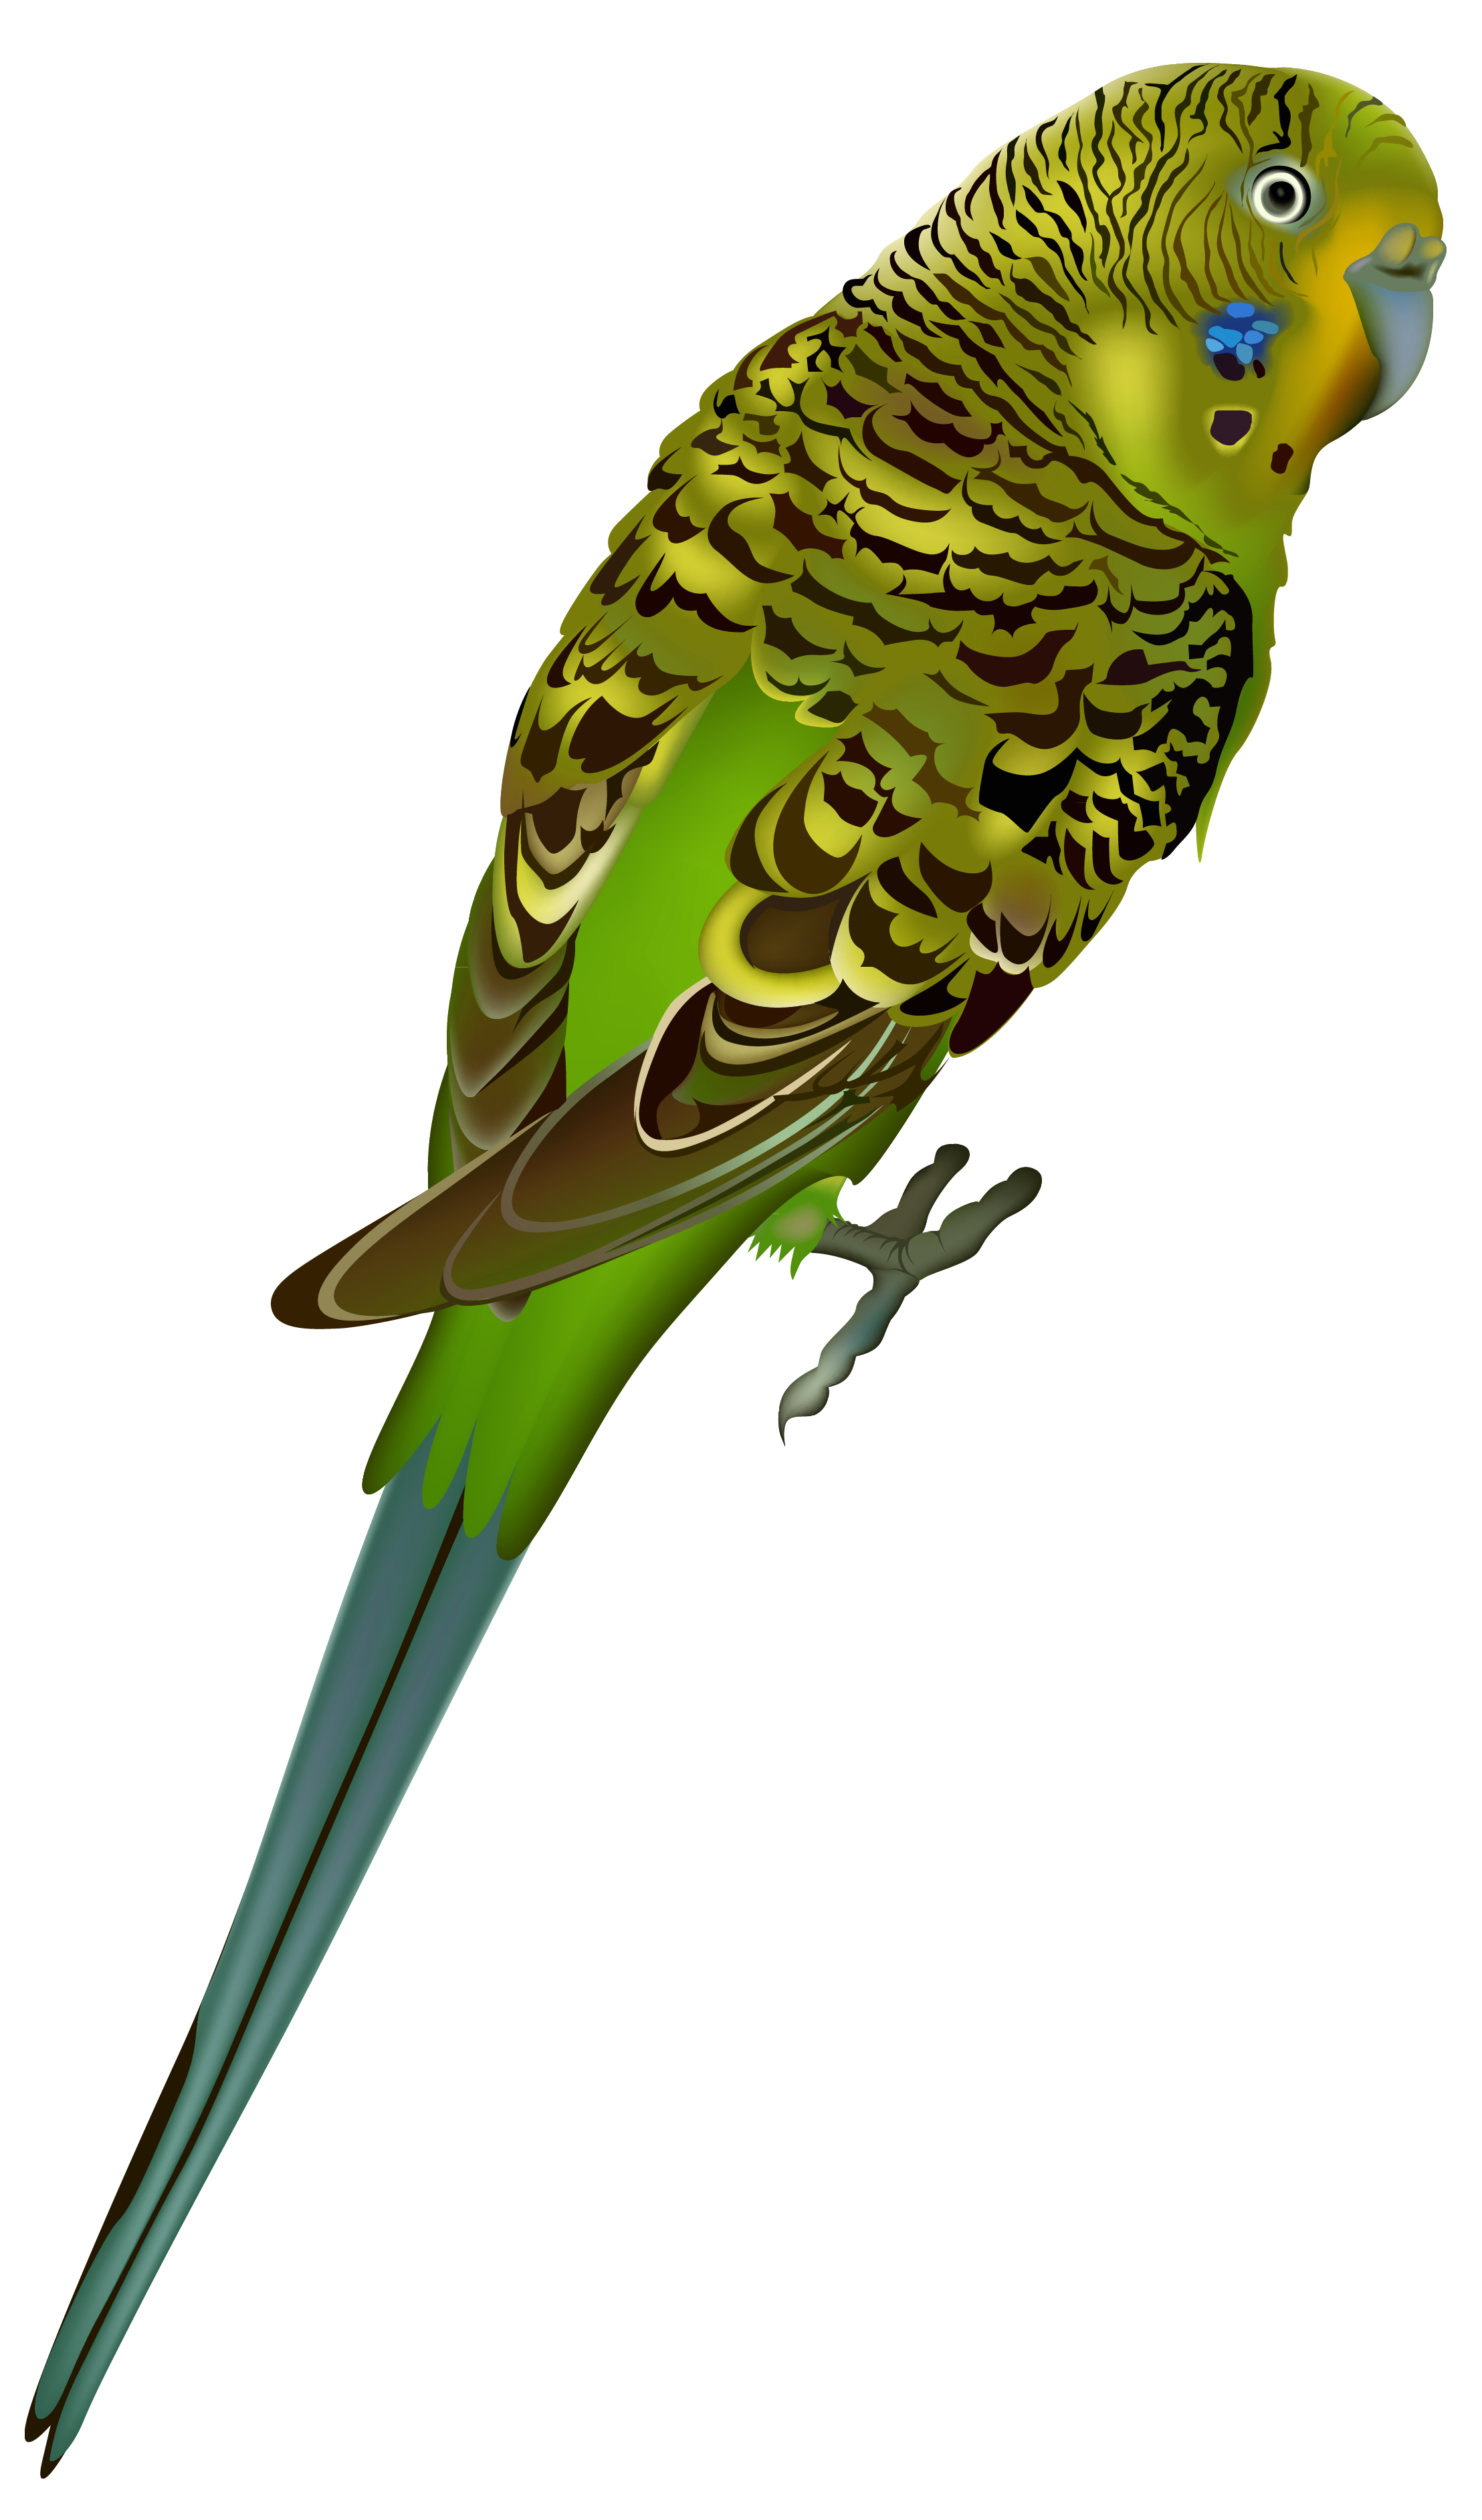 Budgie clipart Budgie Budgie Download #1 clipart